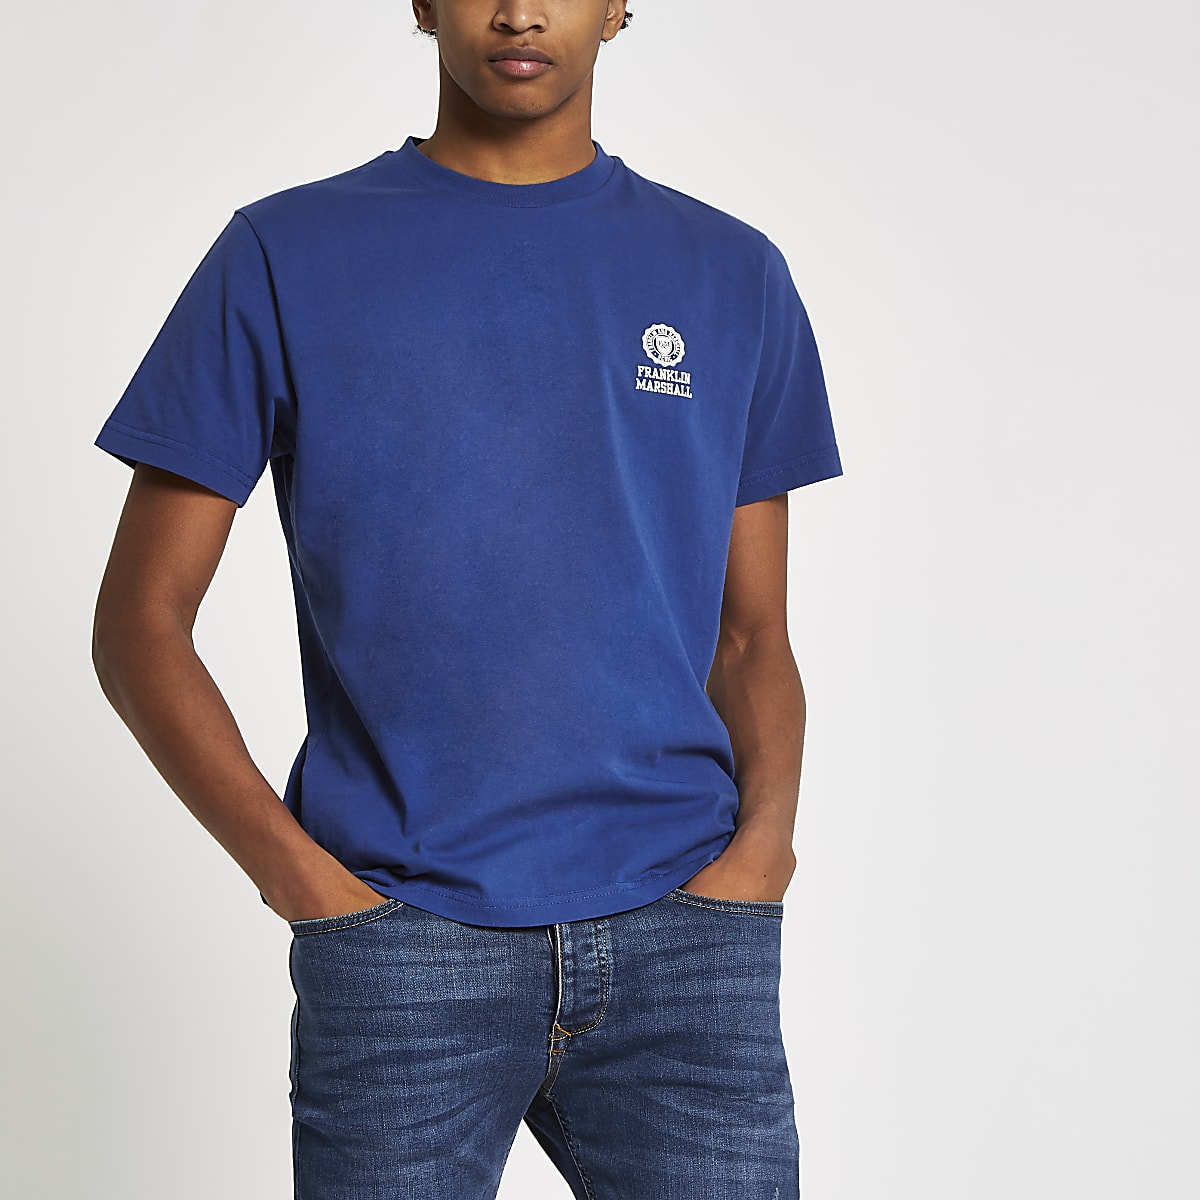 Franklin & Marshall blue chest logo T-shirt